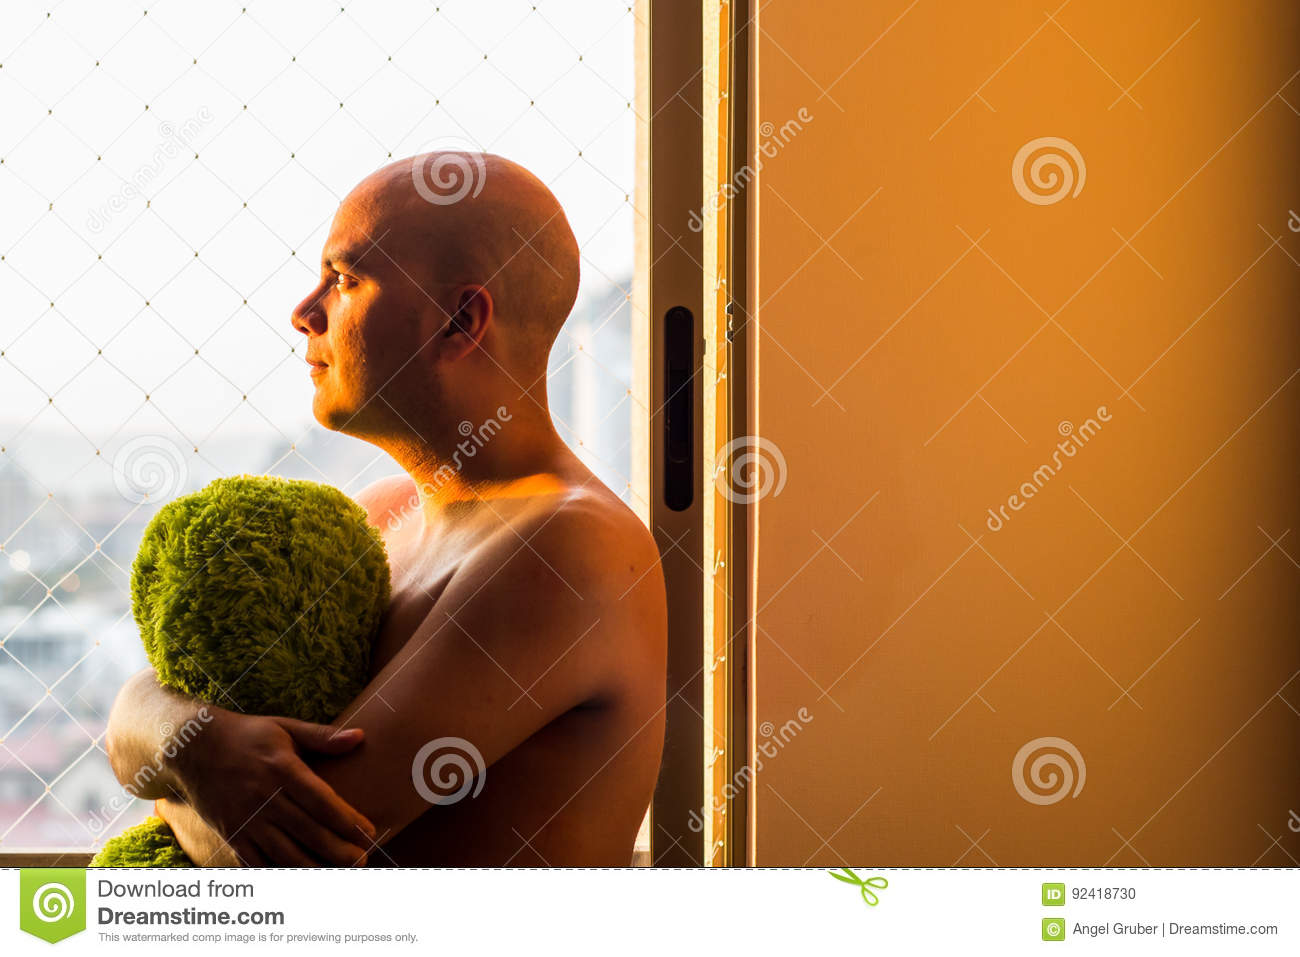 Pensive man at the window